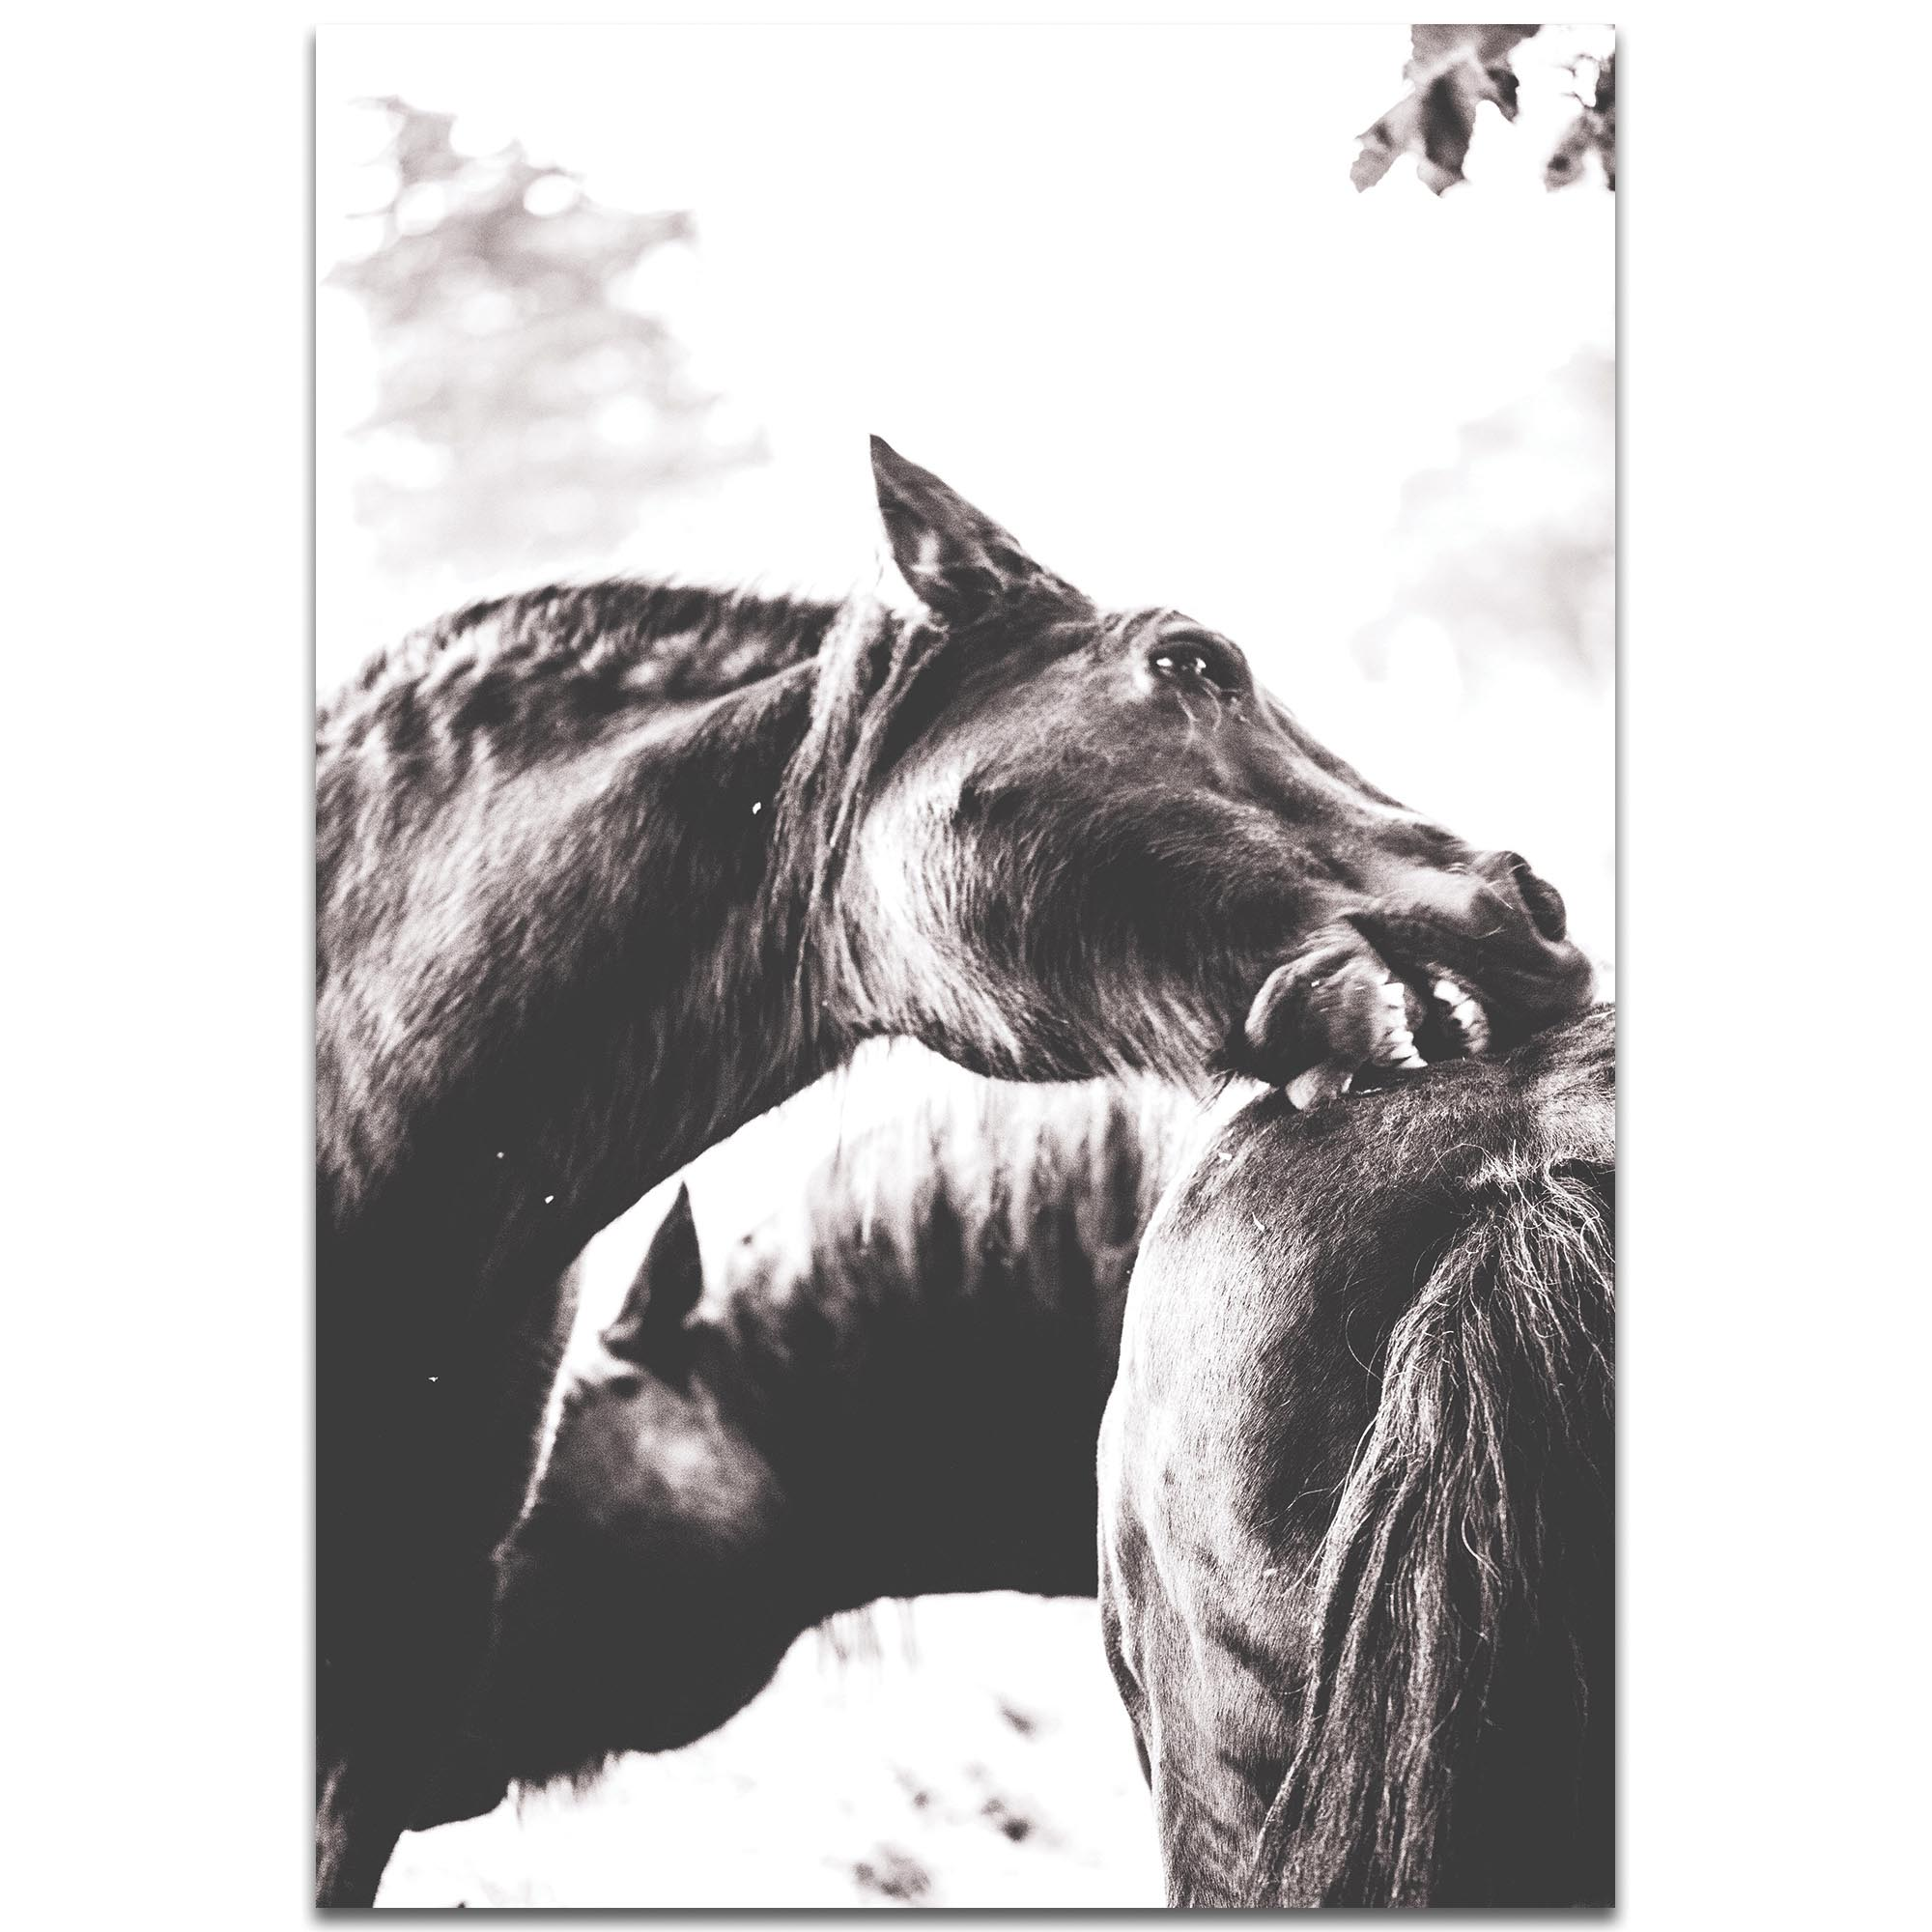 Contemporary Wall Art 'Horse Nibble' - Wildlife Decor on Metal or Plexiglass